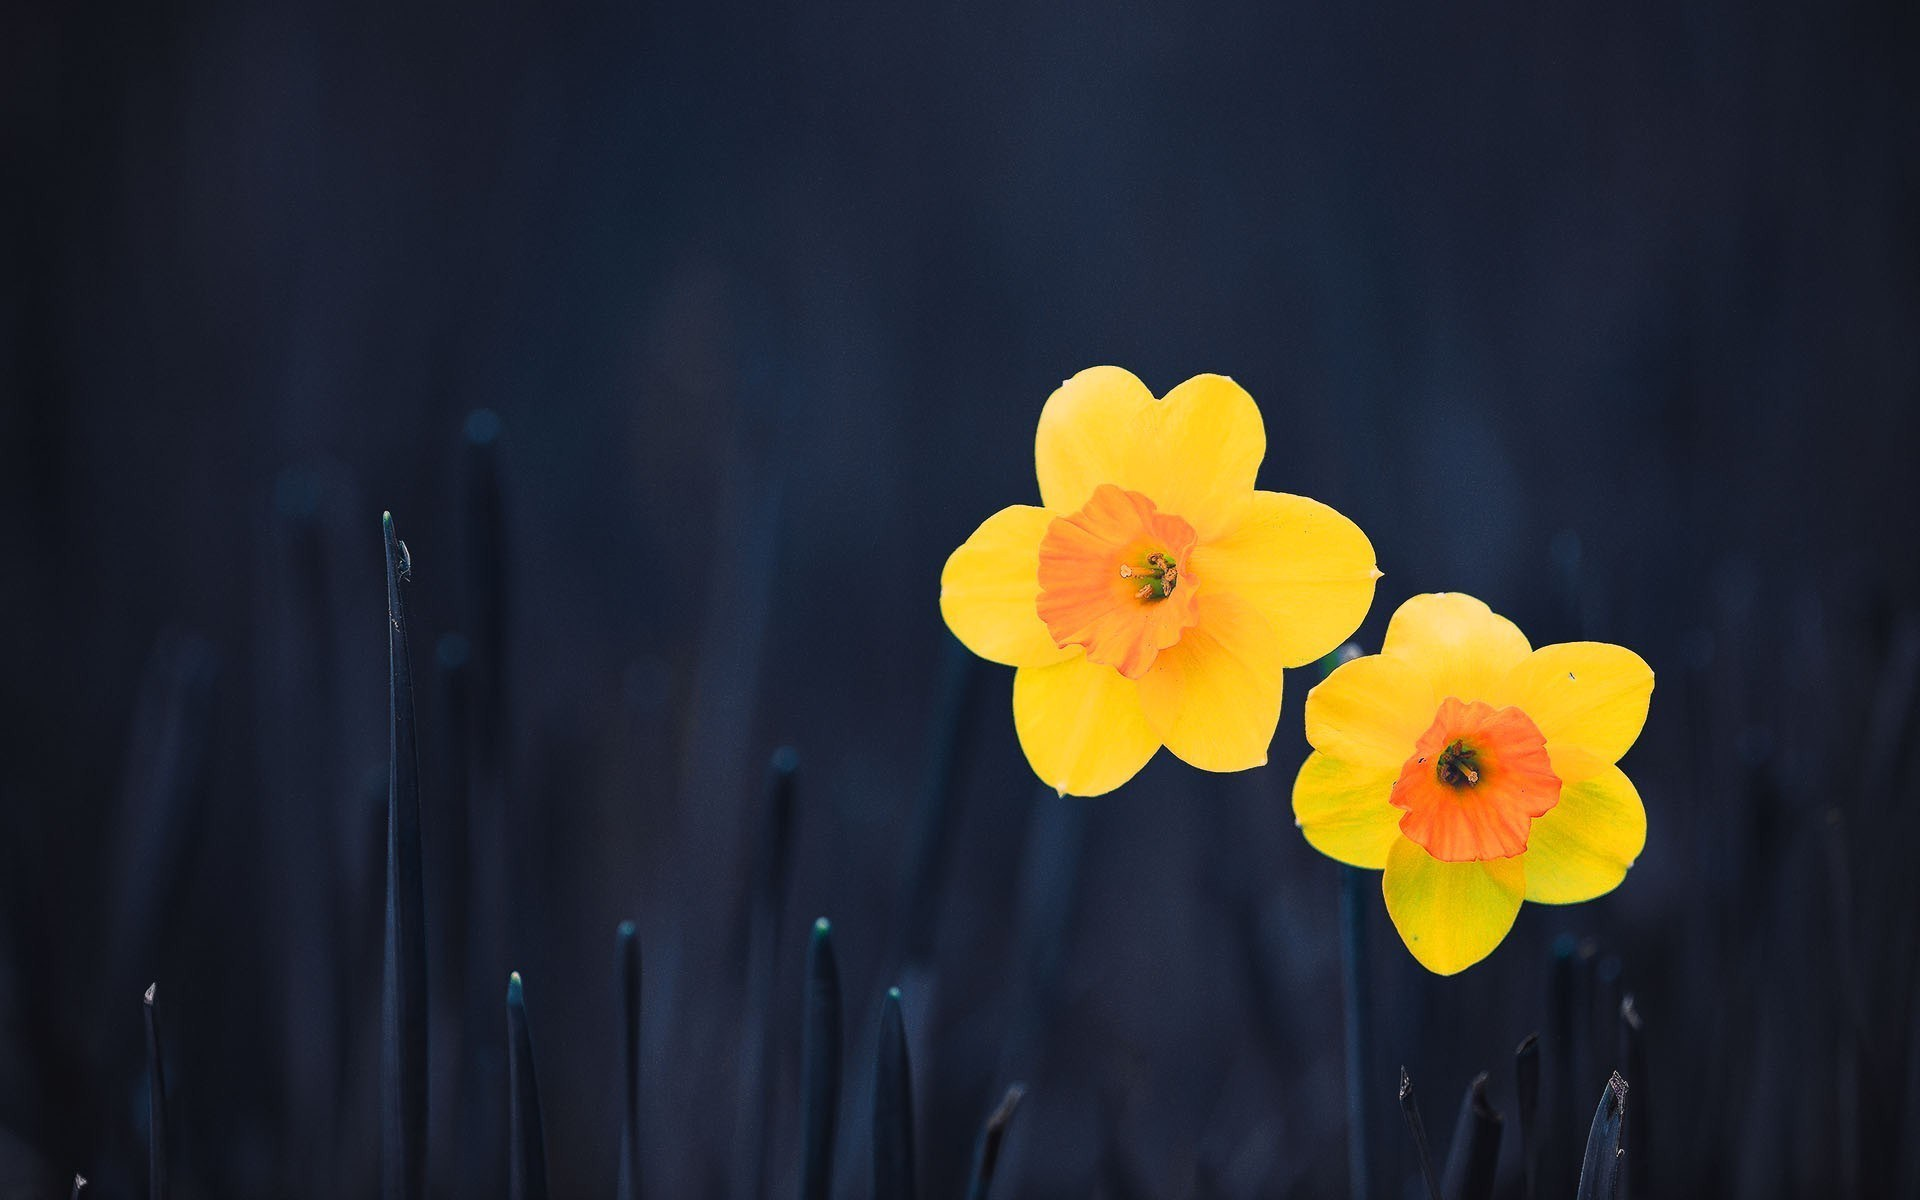 daffodils flower wallpaper hd